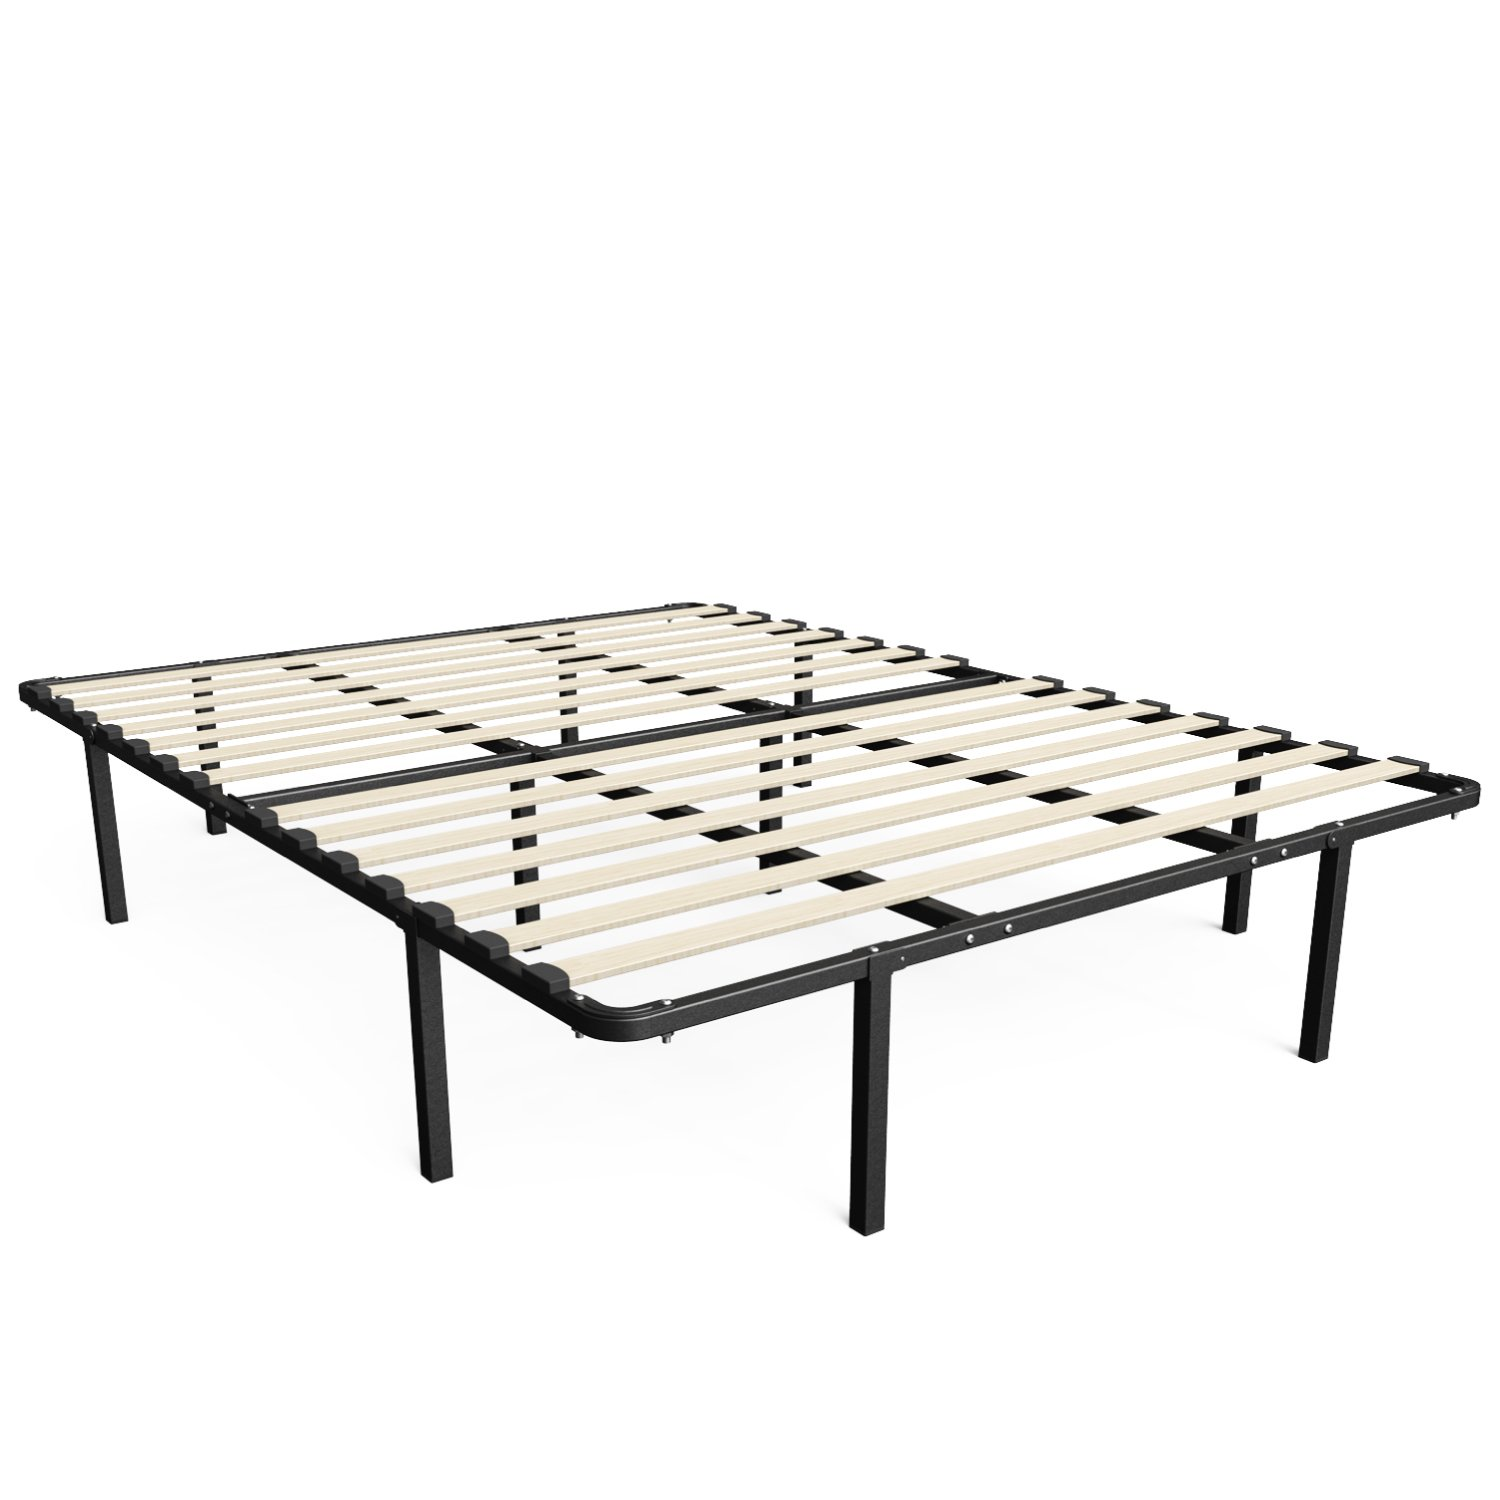 Top 10 Best Bed Frames (2020 Reviews & Buying Guide) 3